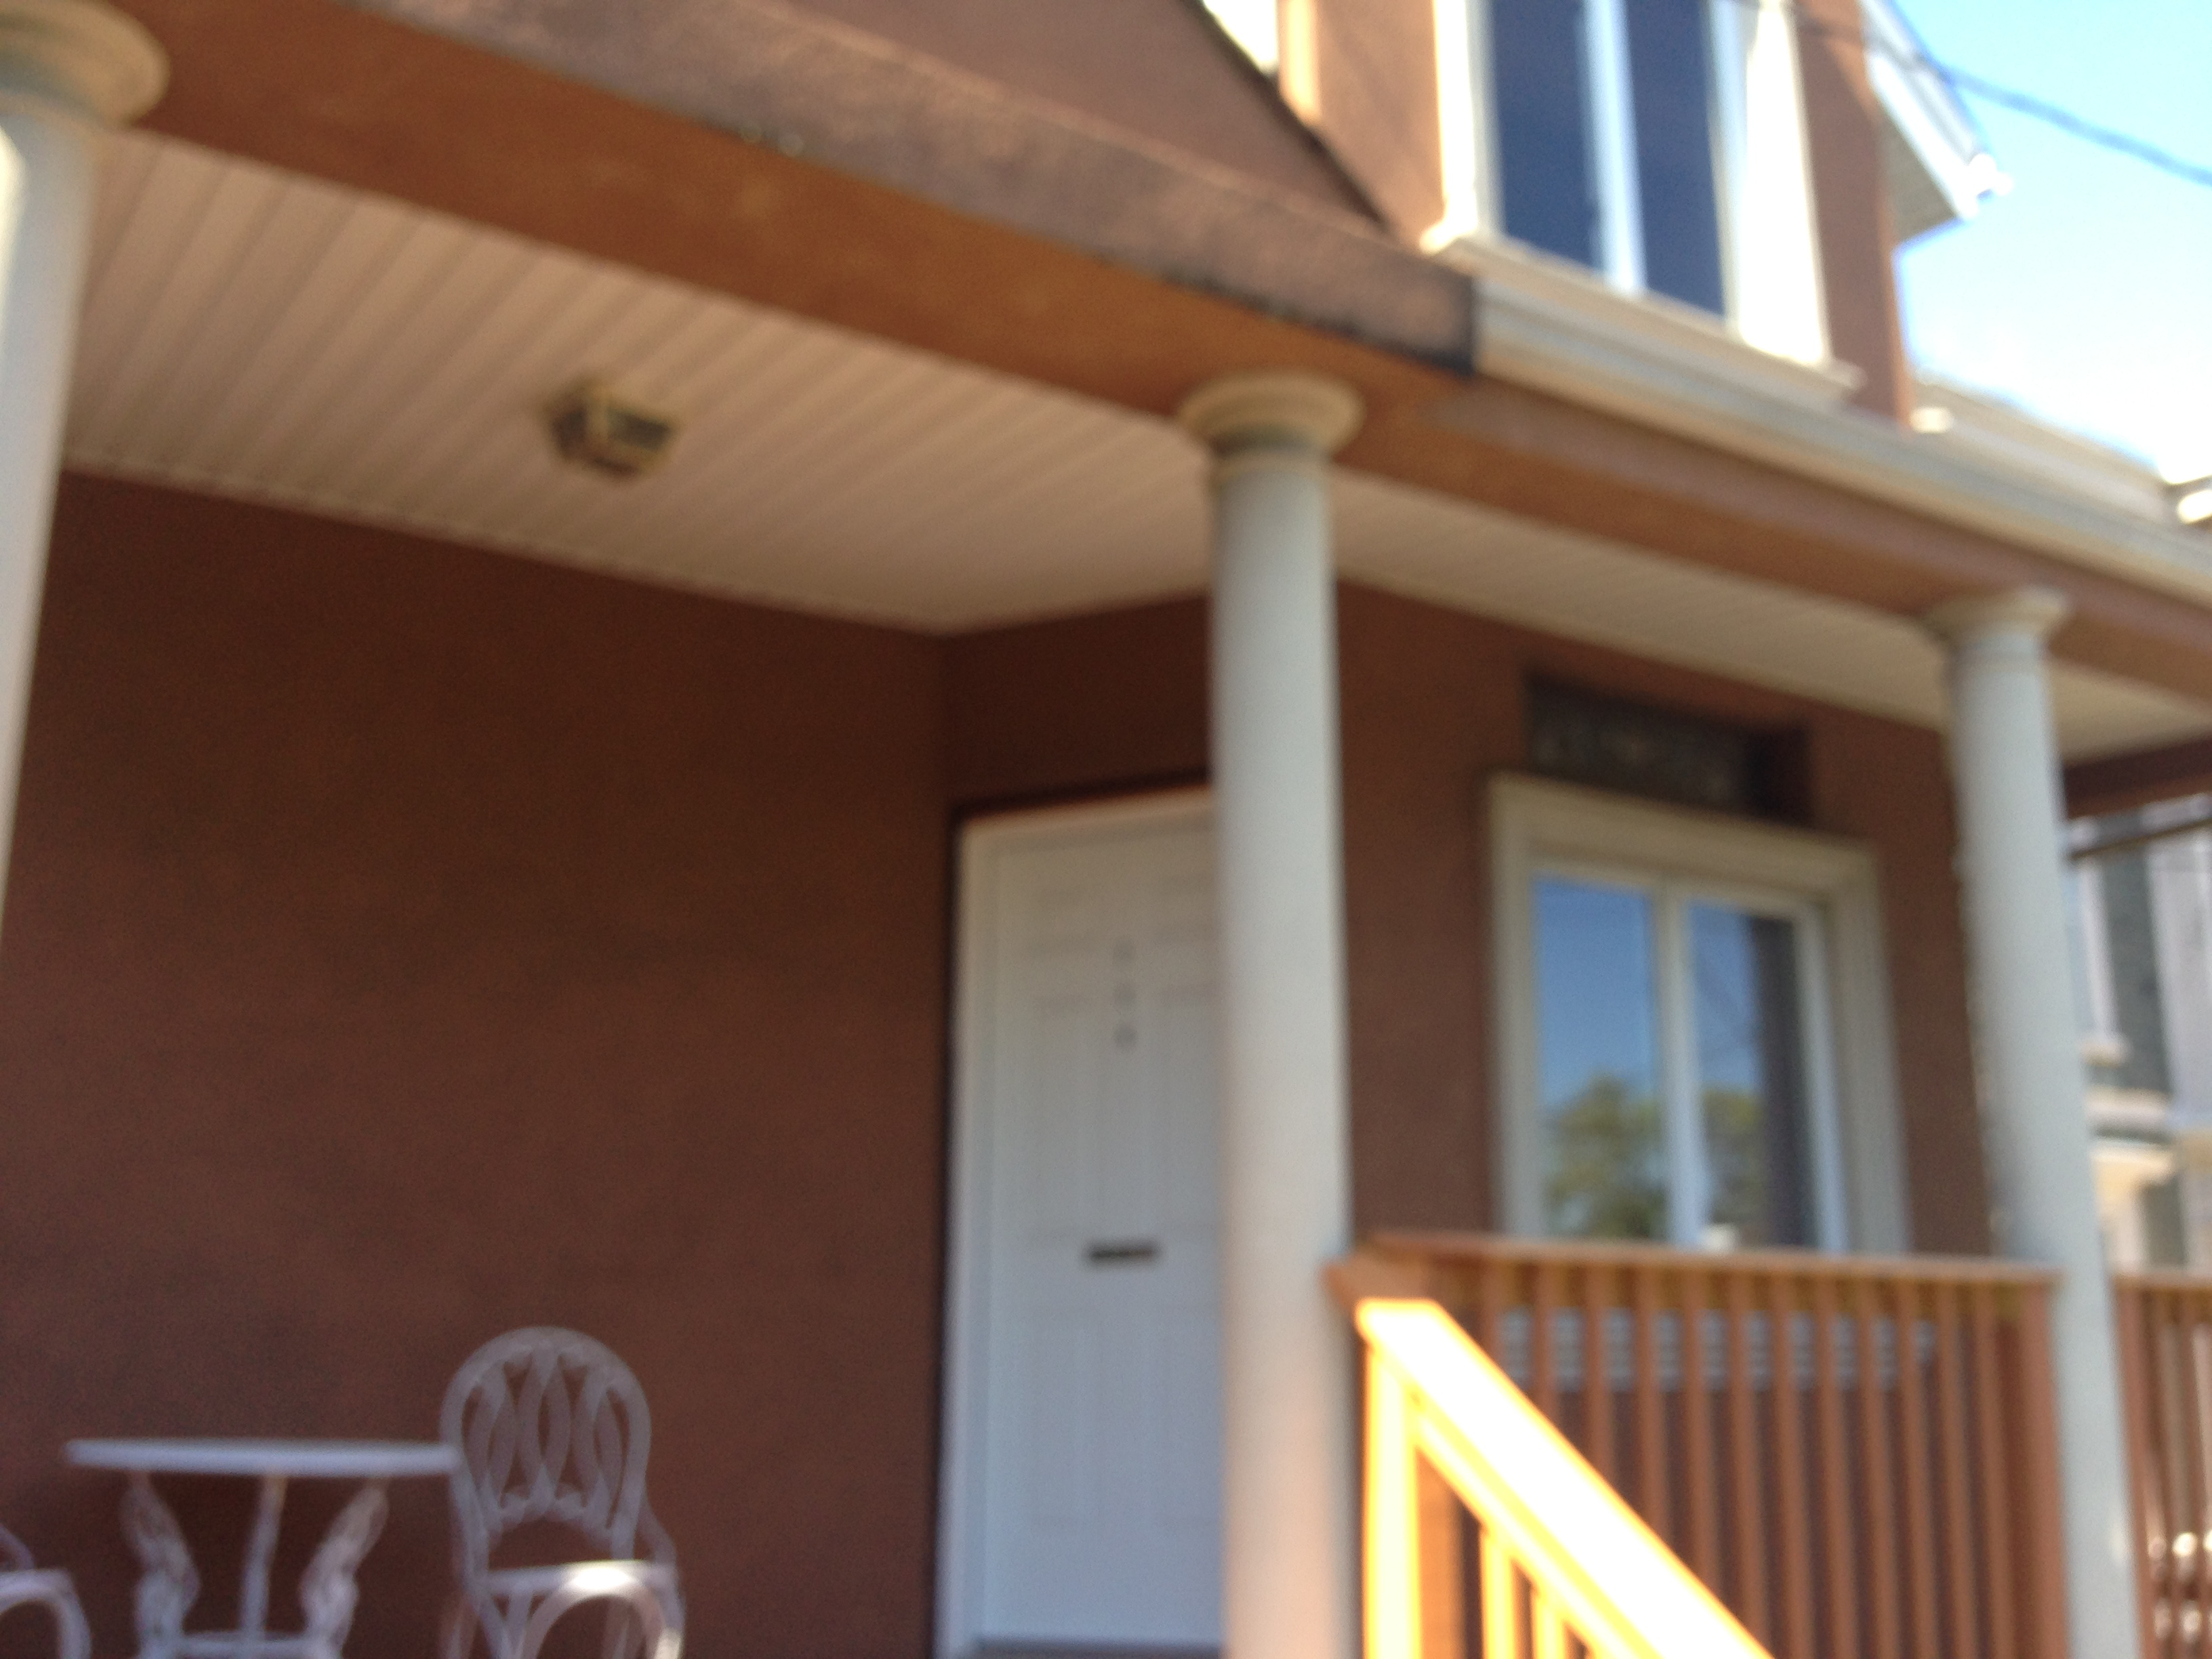 3 Bedroom Apartments In Staten Island 28 Images New York Accommodation 6 Bedroom Apartment